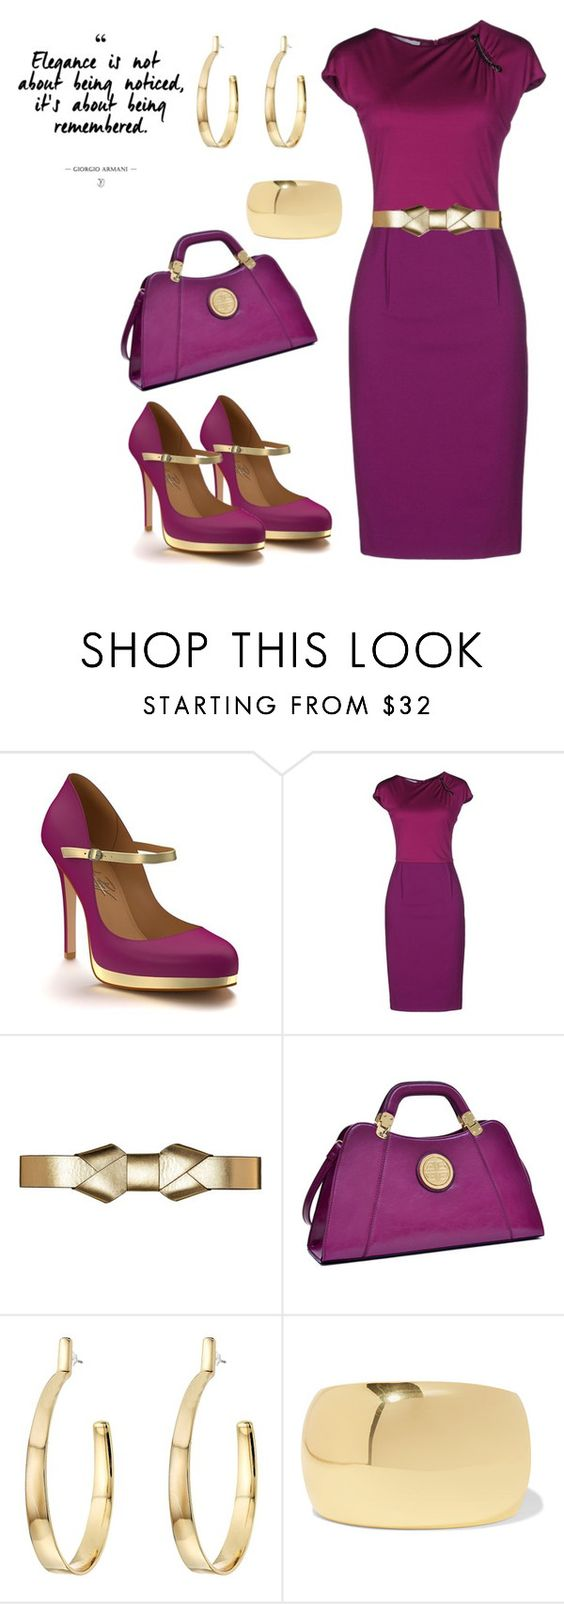 """""""Purple & Gold"""" by mstiffanyc ❤ liked on Polyvore featuring Shoes of Prey, Les Copains, Marni, Dasein, Vince Camuto and Kenneth Jay Lane"""